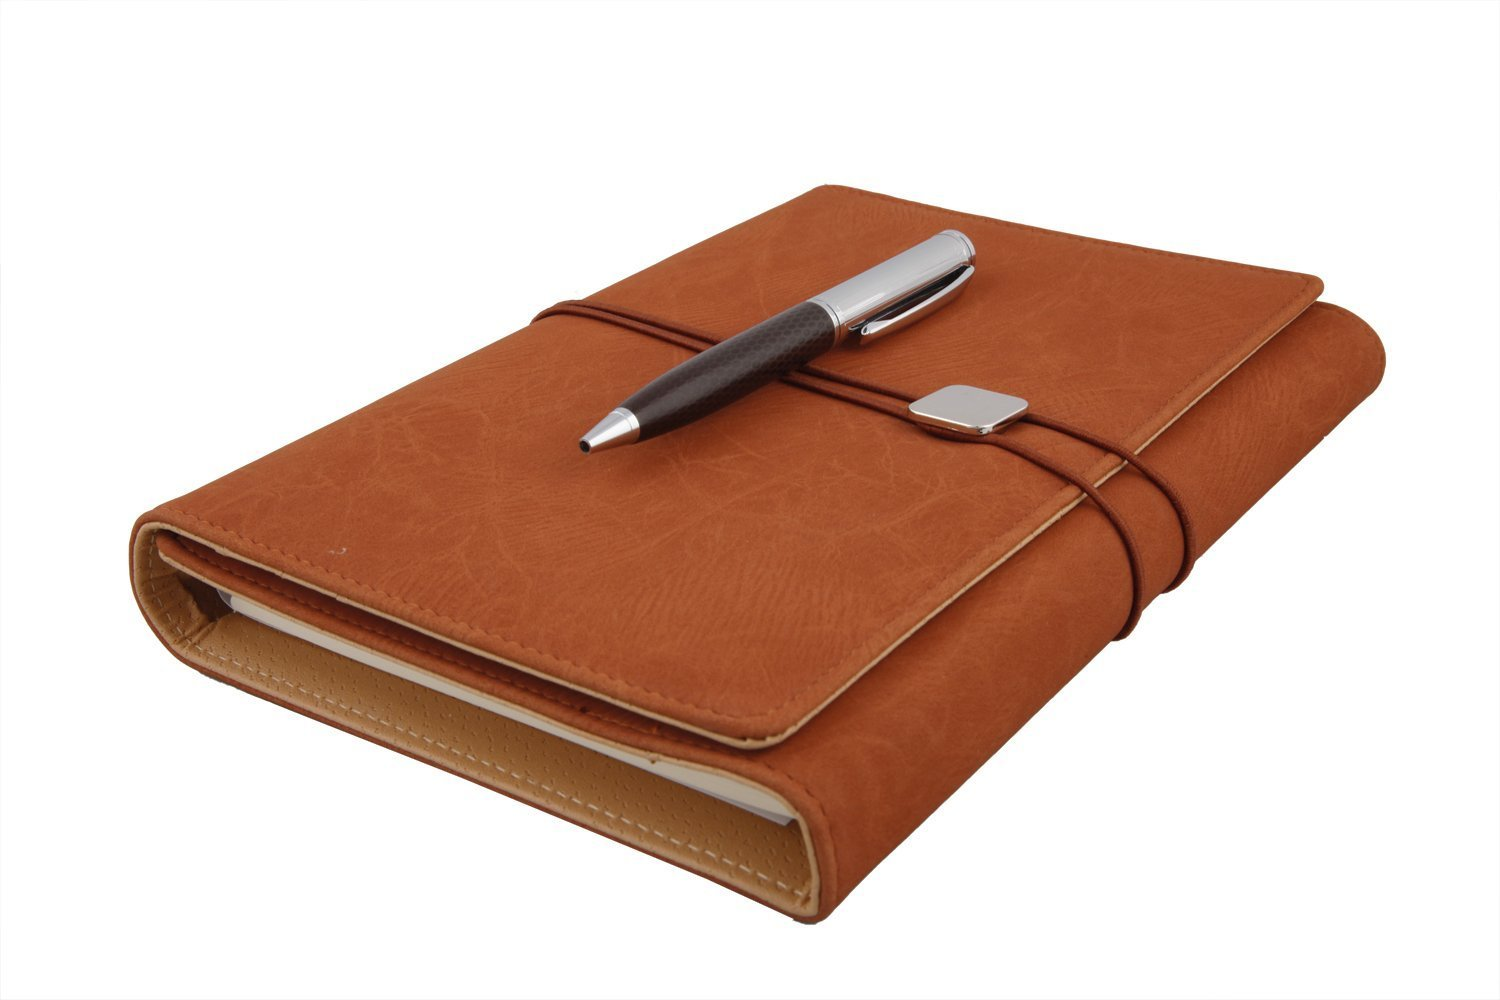 Coi Ethinic Brown Best self Journal Business undated Passion Goal Planner/Daily Diary & Little More Organizer/Personal Planner 2017-2018 with Pen with Free Pen by COI